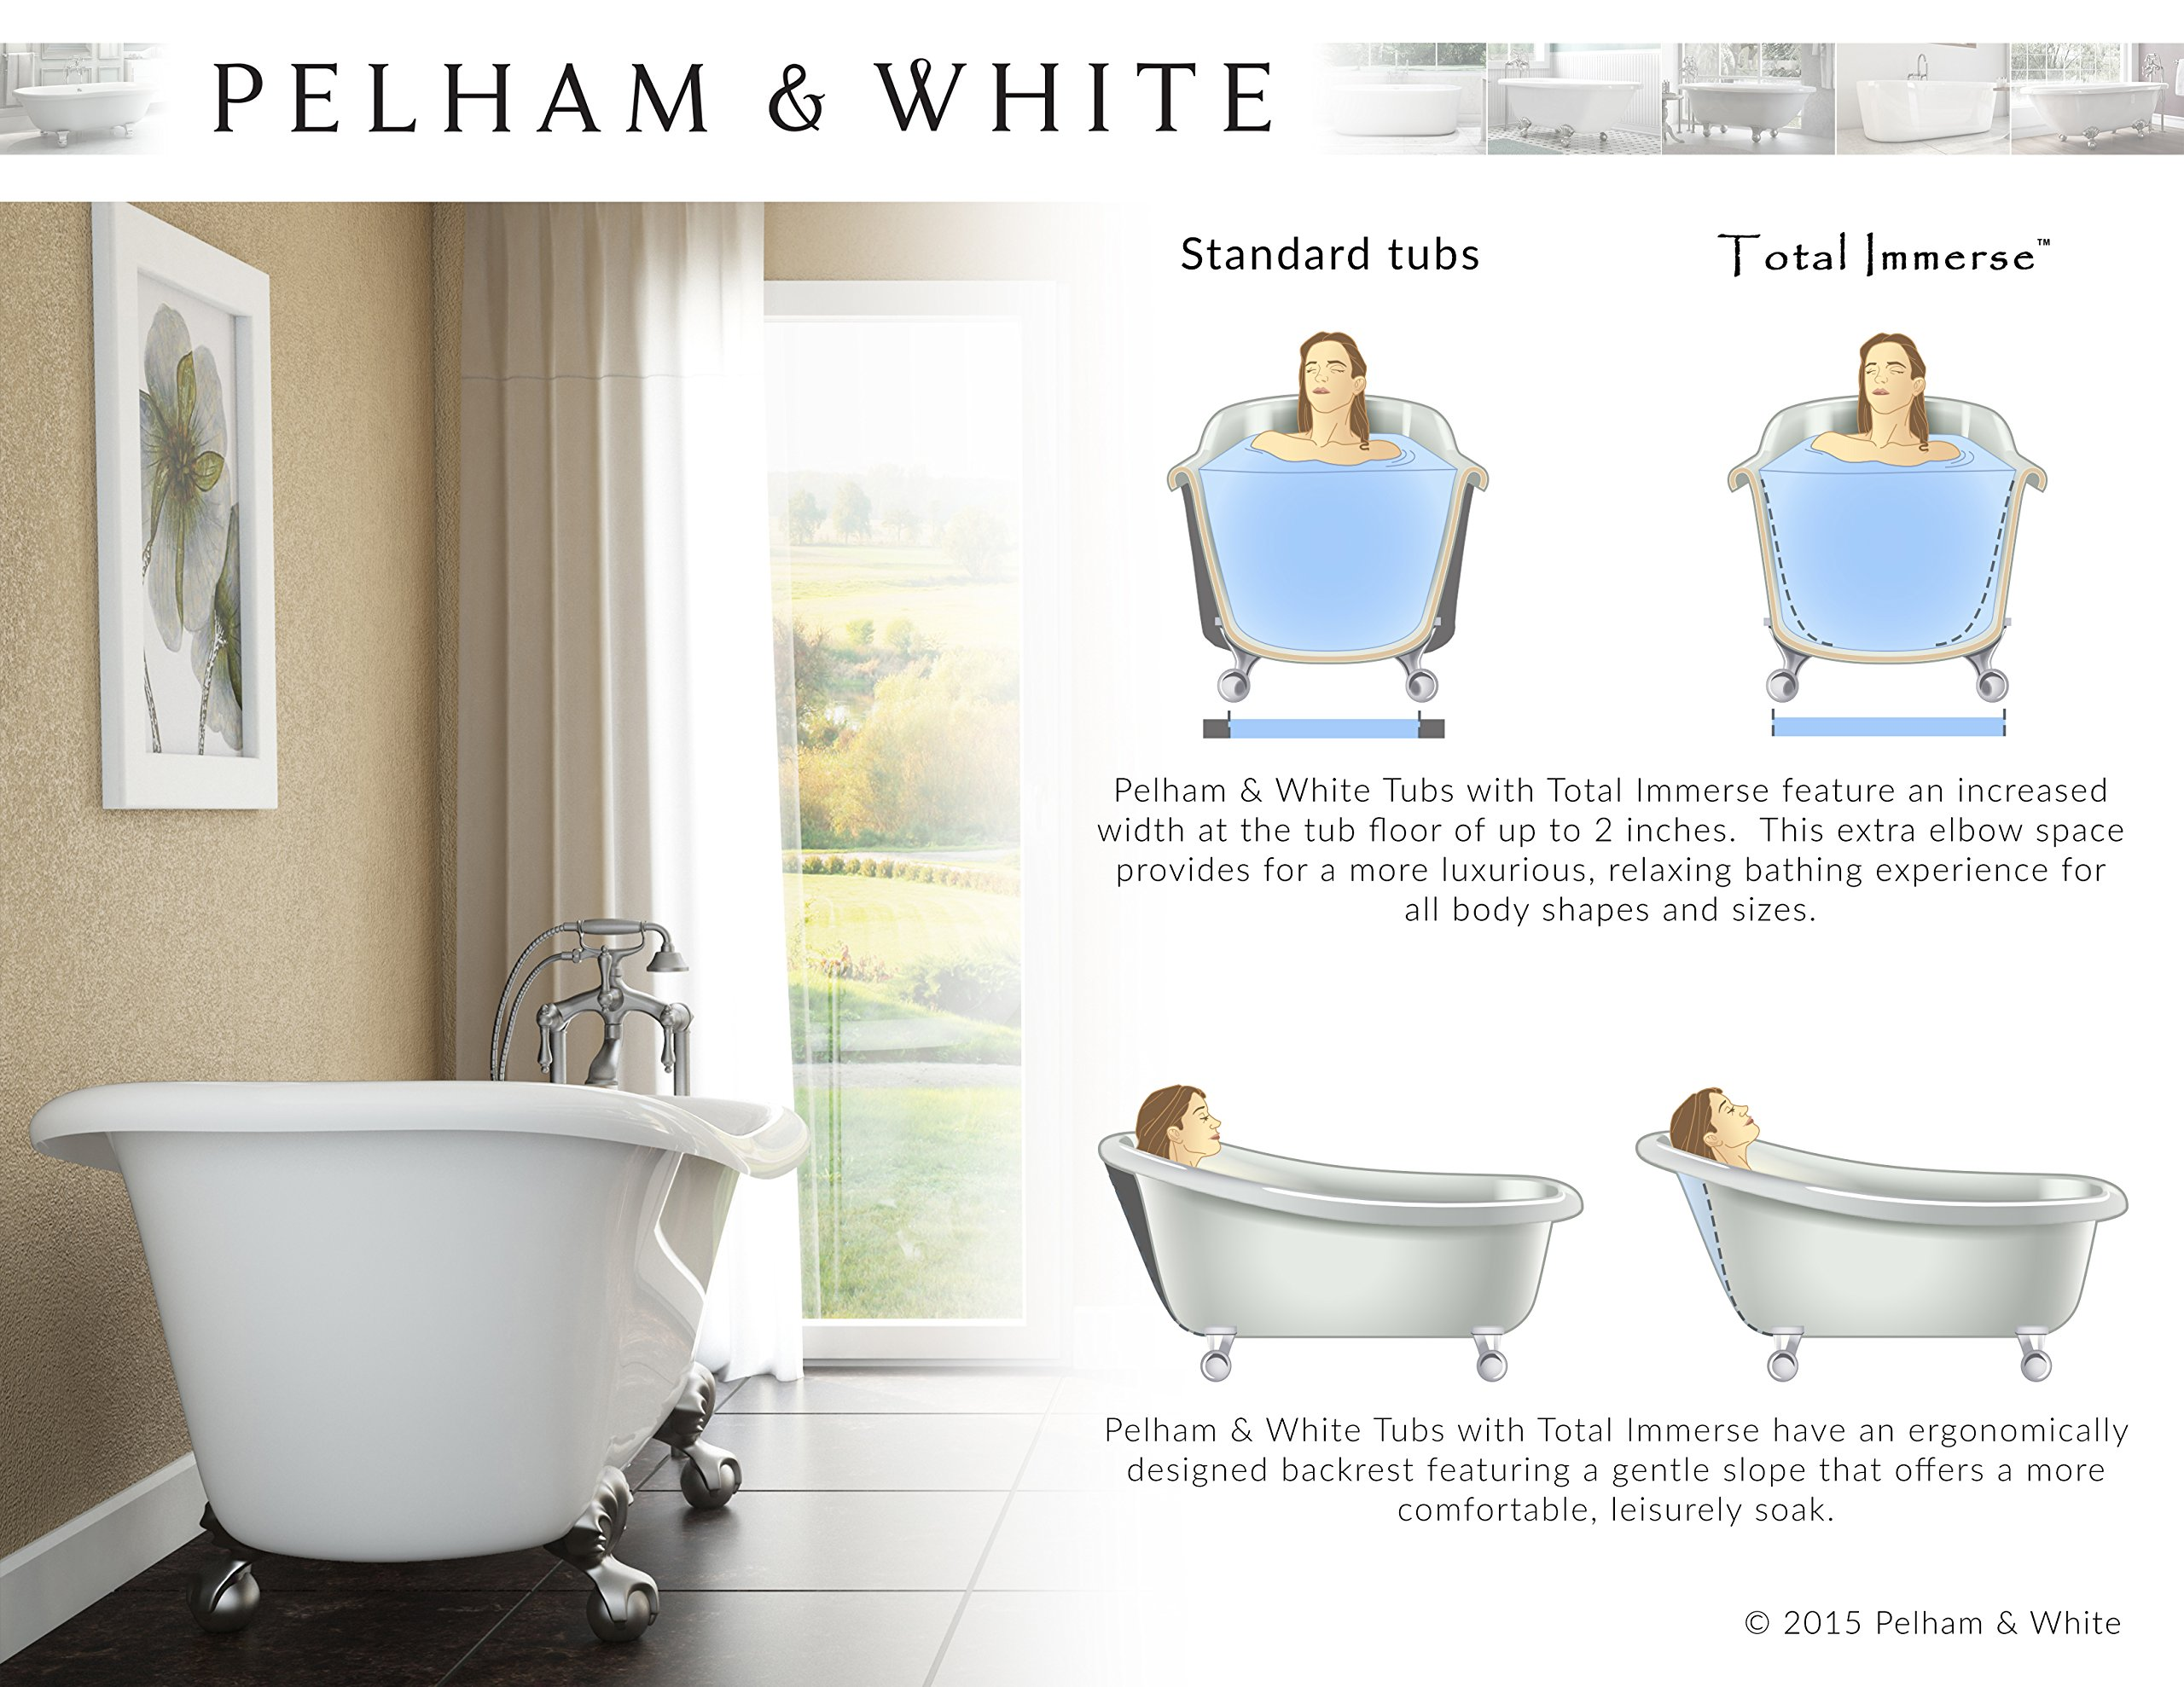 Luxury 60 inch Modern Clawfoot Tub in White with Stand-Alone Freestanding Tub Design, Includes Modern Brushed Nickel Cannonball Feet and Drain, From The Brookdale Collection by Pelham & White (Image #9)